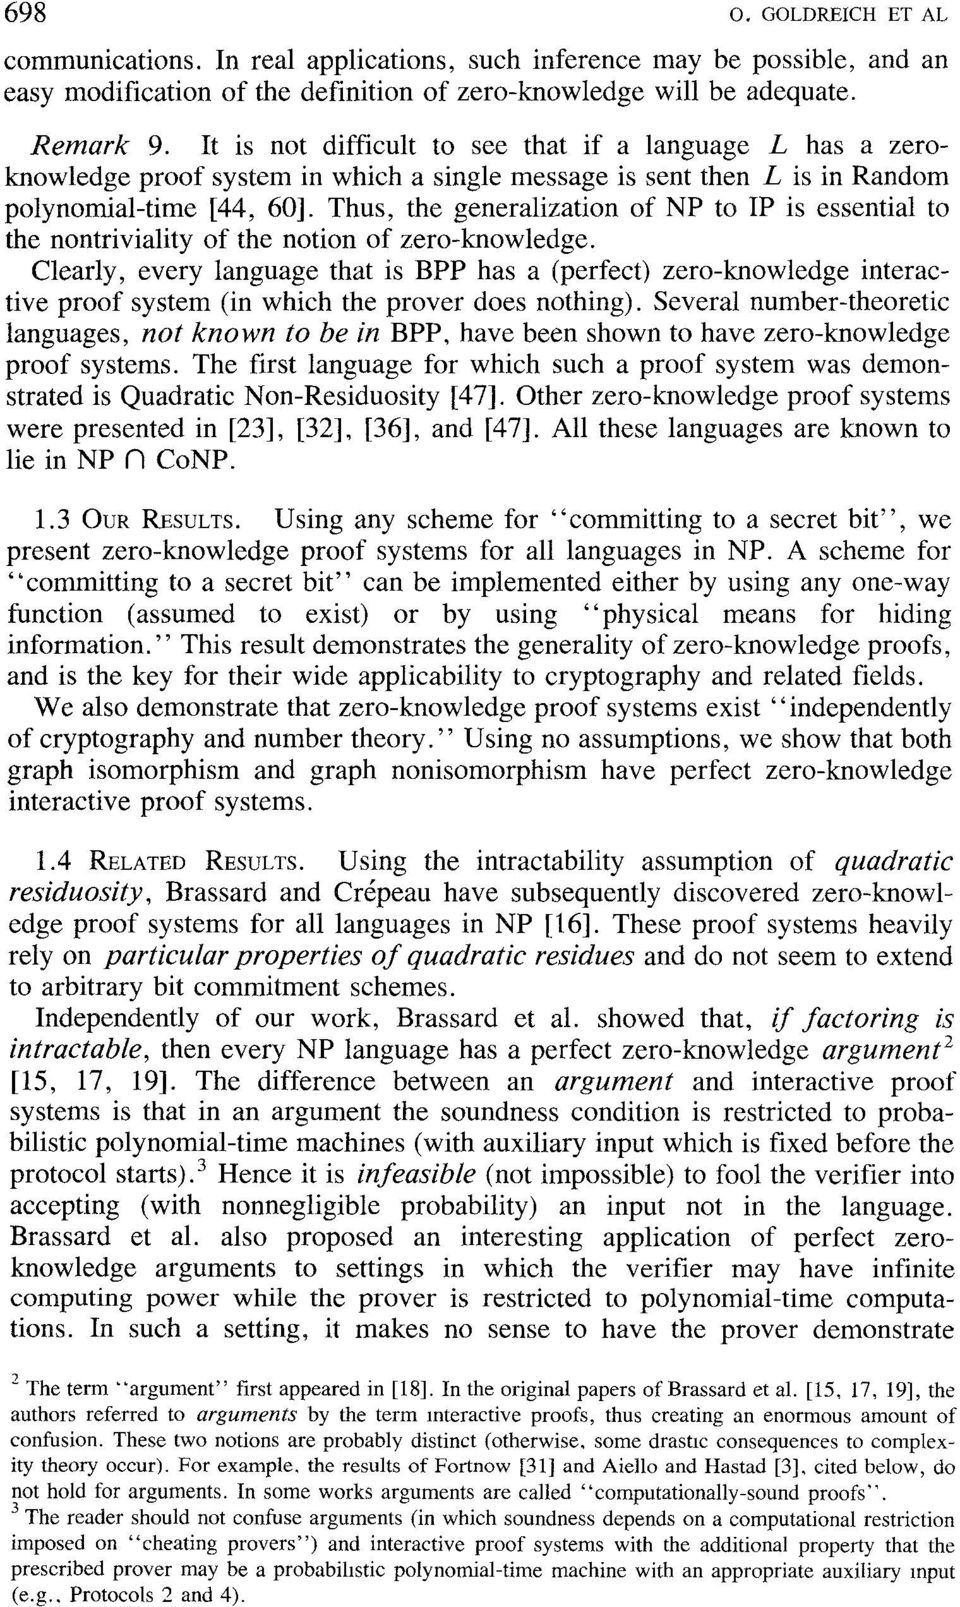 Thus, the generalization of NP to 1P is essential to the nontriviality of the notion of zero-knowledge.